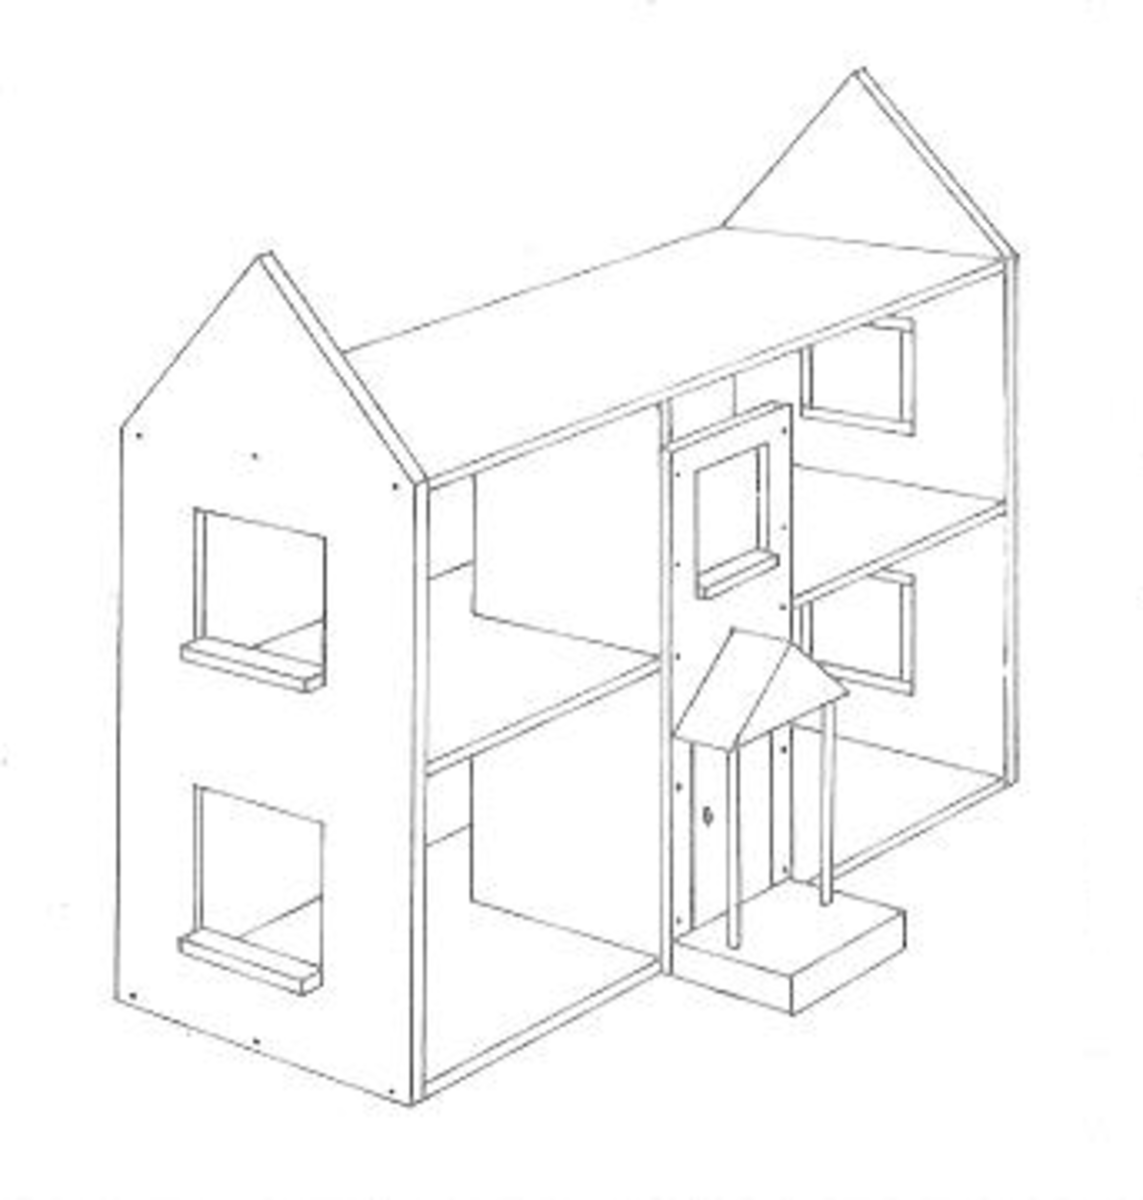 Figure 6 - Dollhouse Front Panel in Place